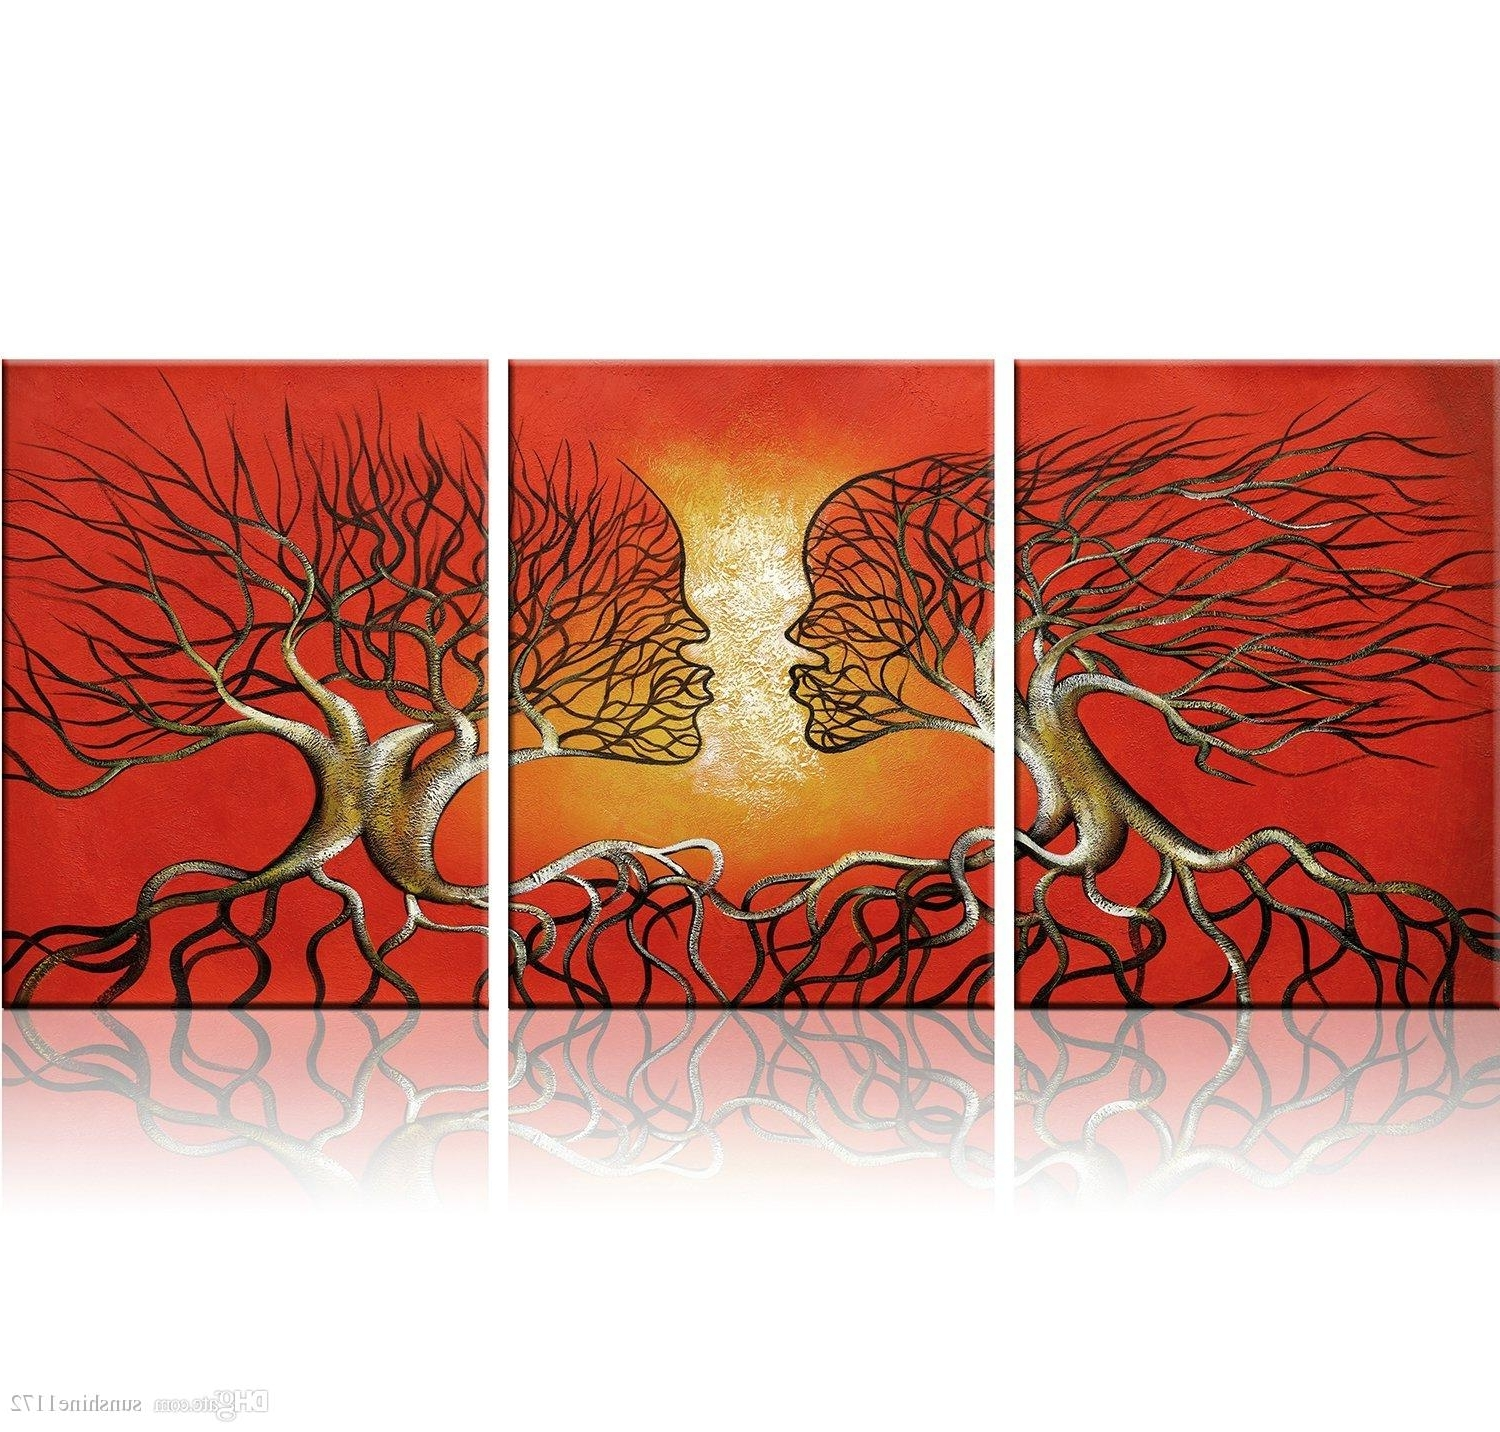 Latest Modern Abstract Lovers Tree Wall Art Red Framed Giclee Canvas For With Regard To Abstract Orange Wall Art (View 15 of 15)